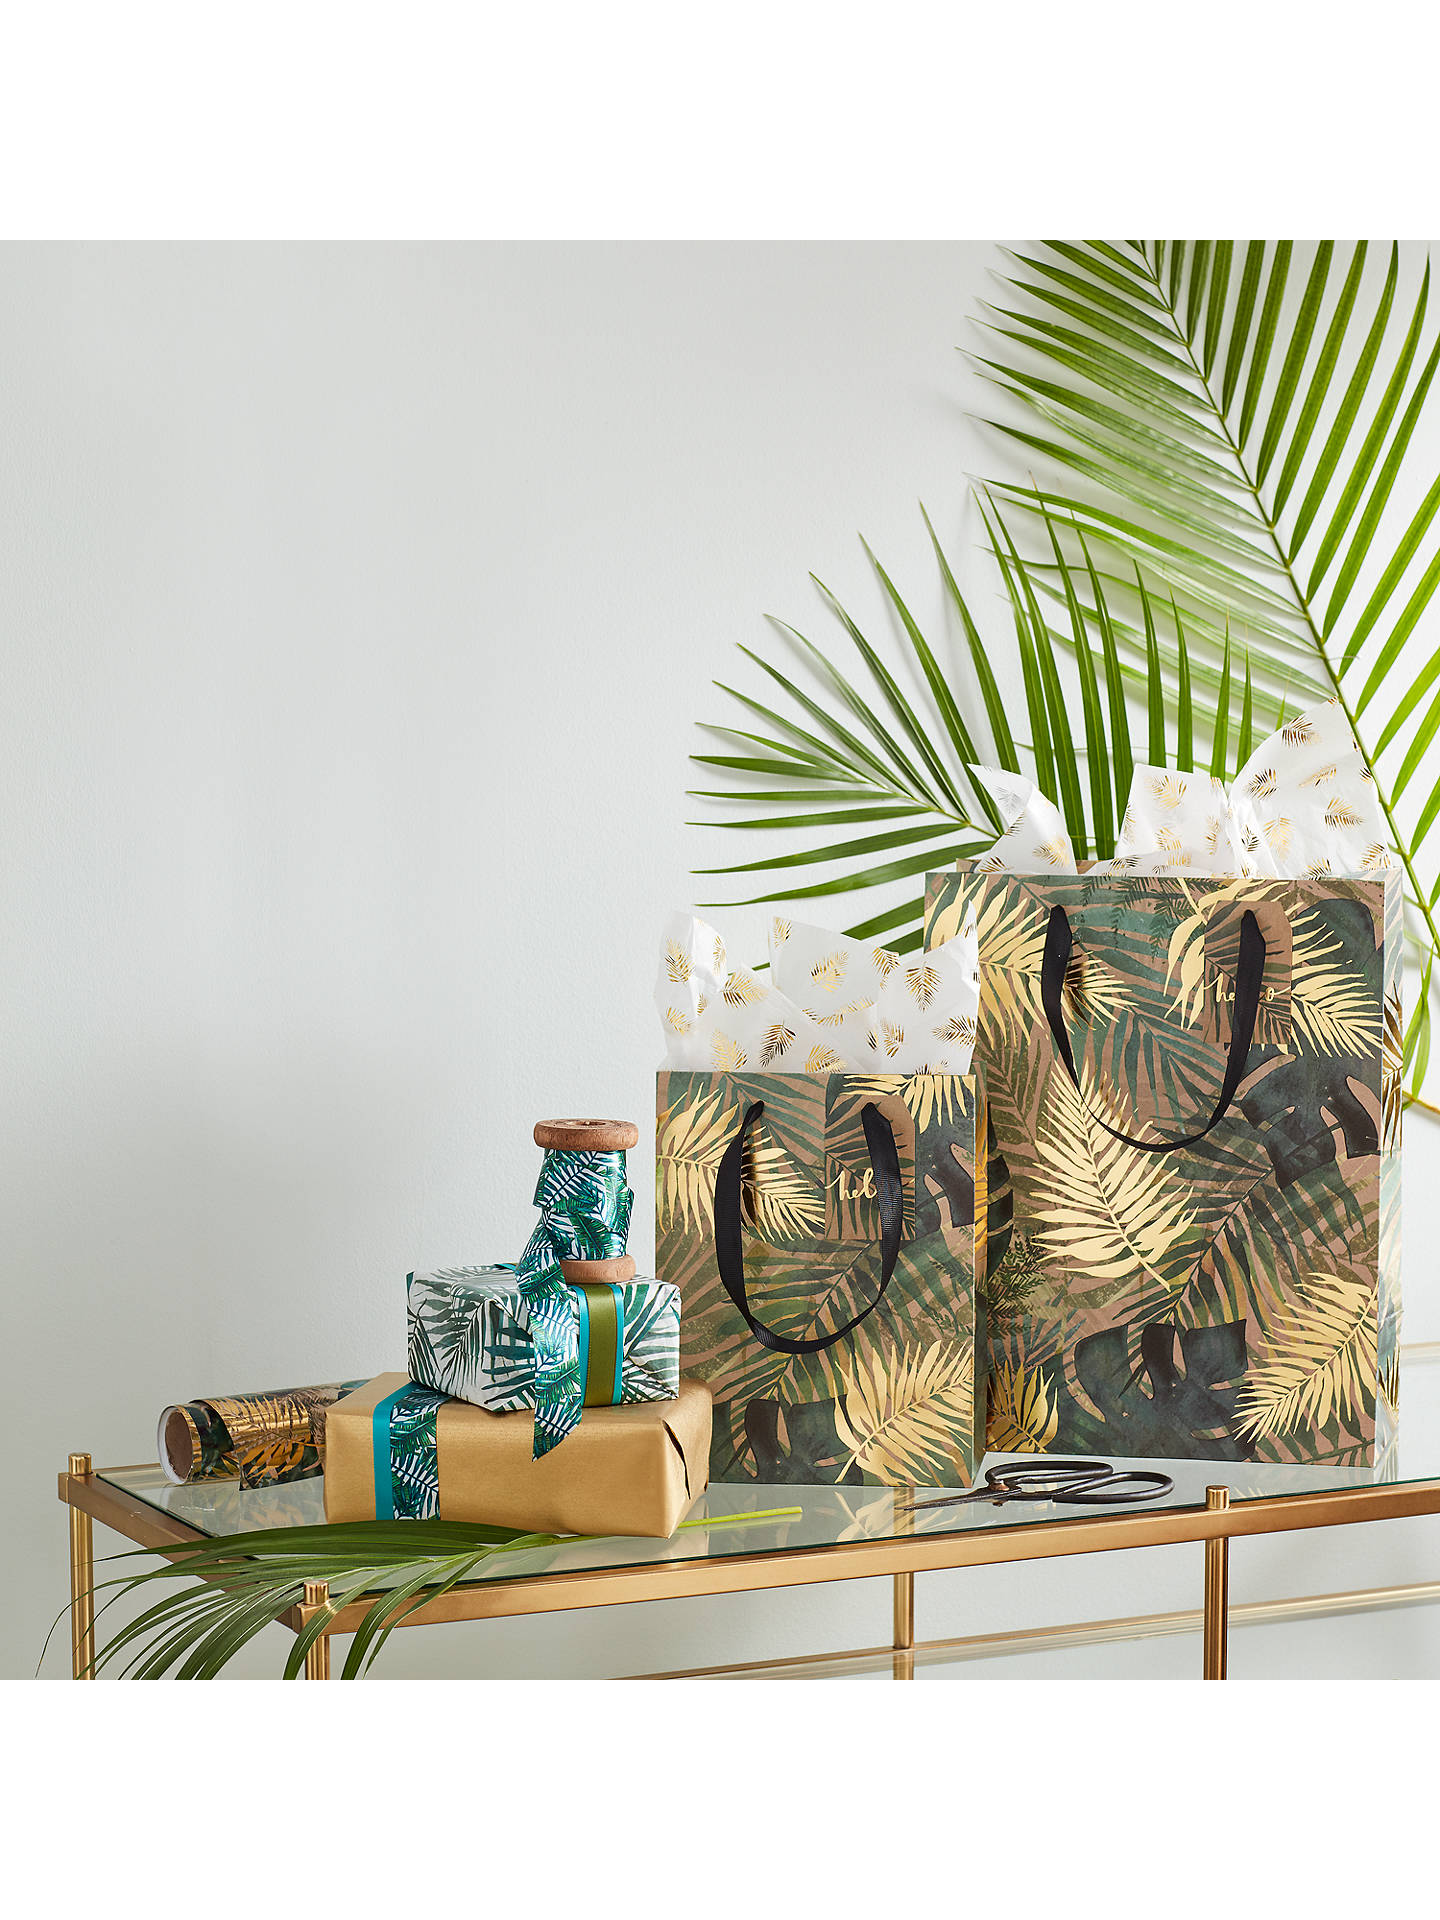 Buy John Lewis & Partners Foiled Gold Leaf Tissue Paper, 3 Sheets Online at johnlewis.com